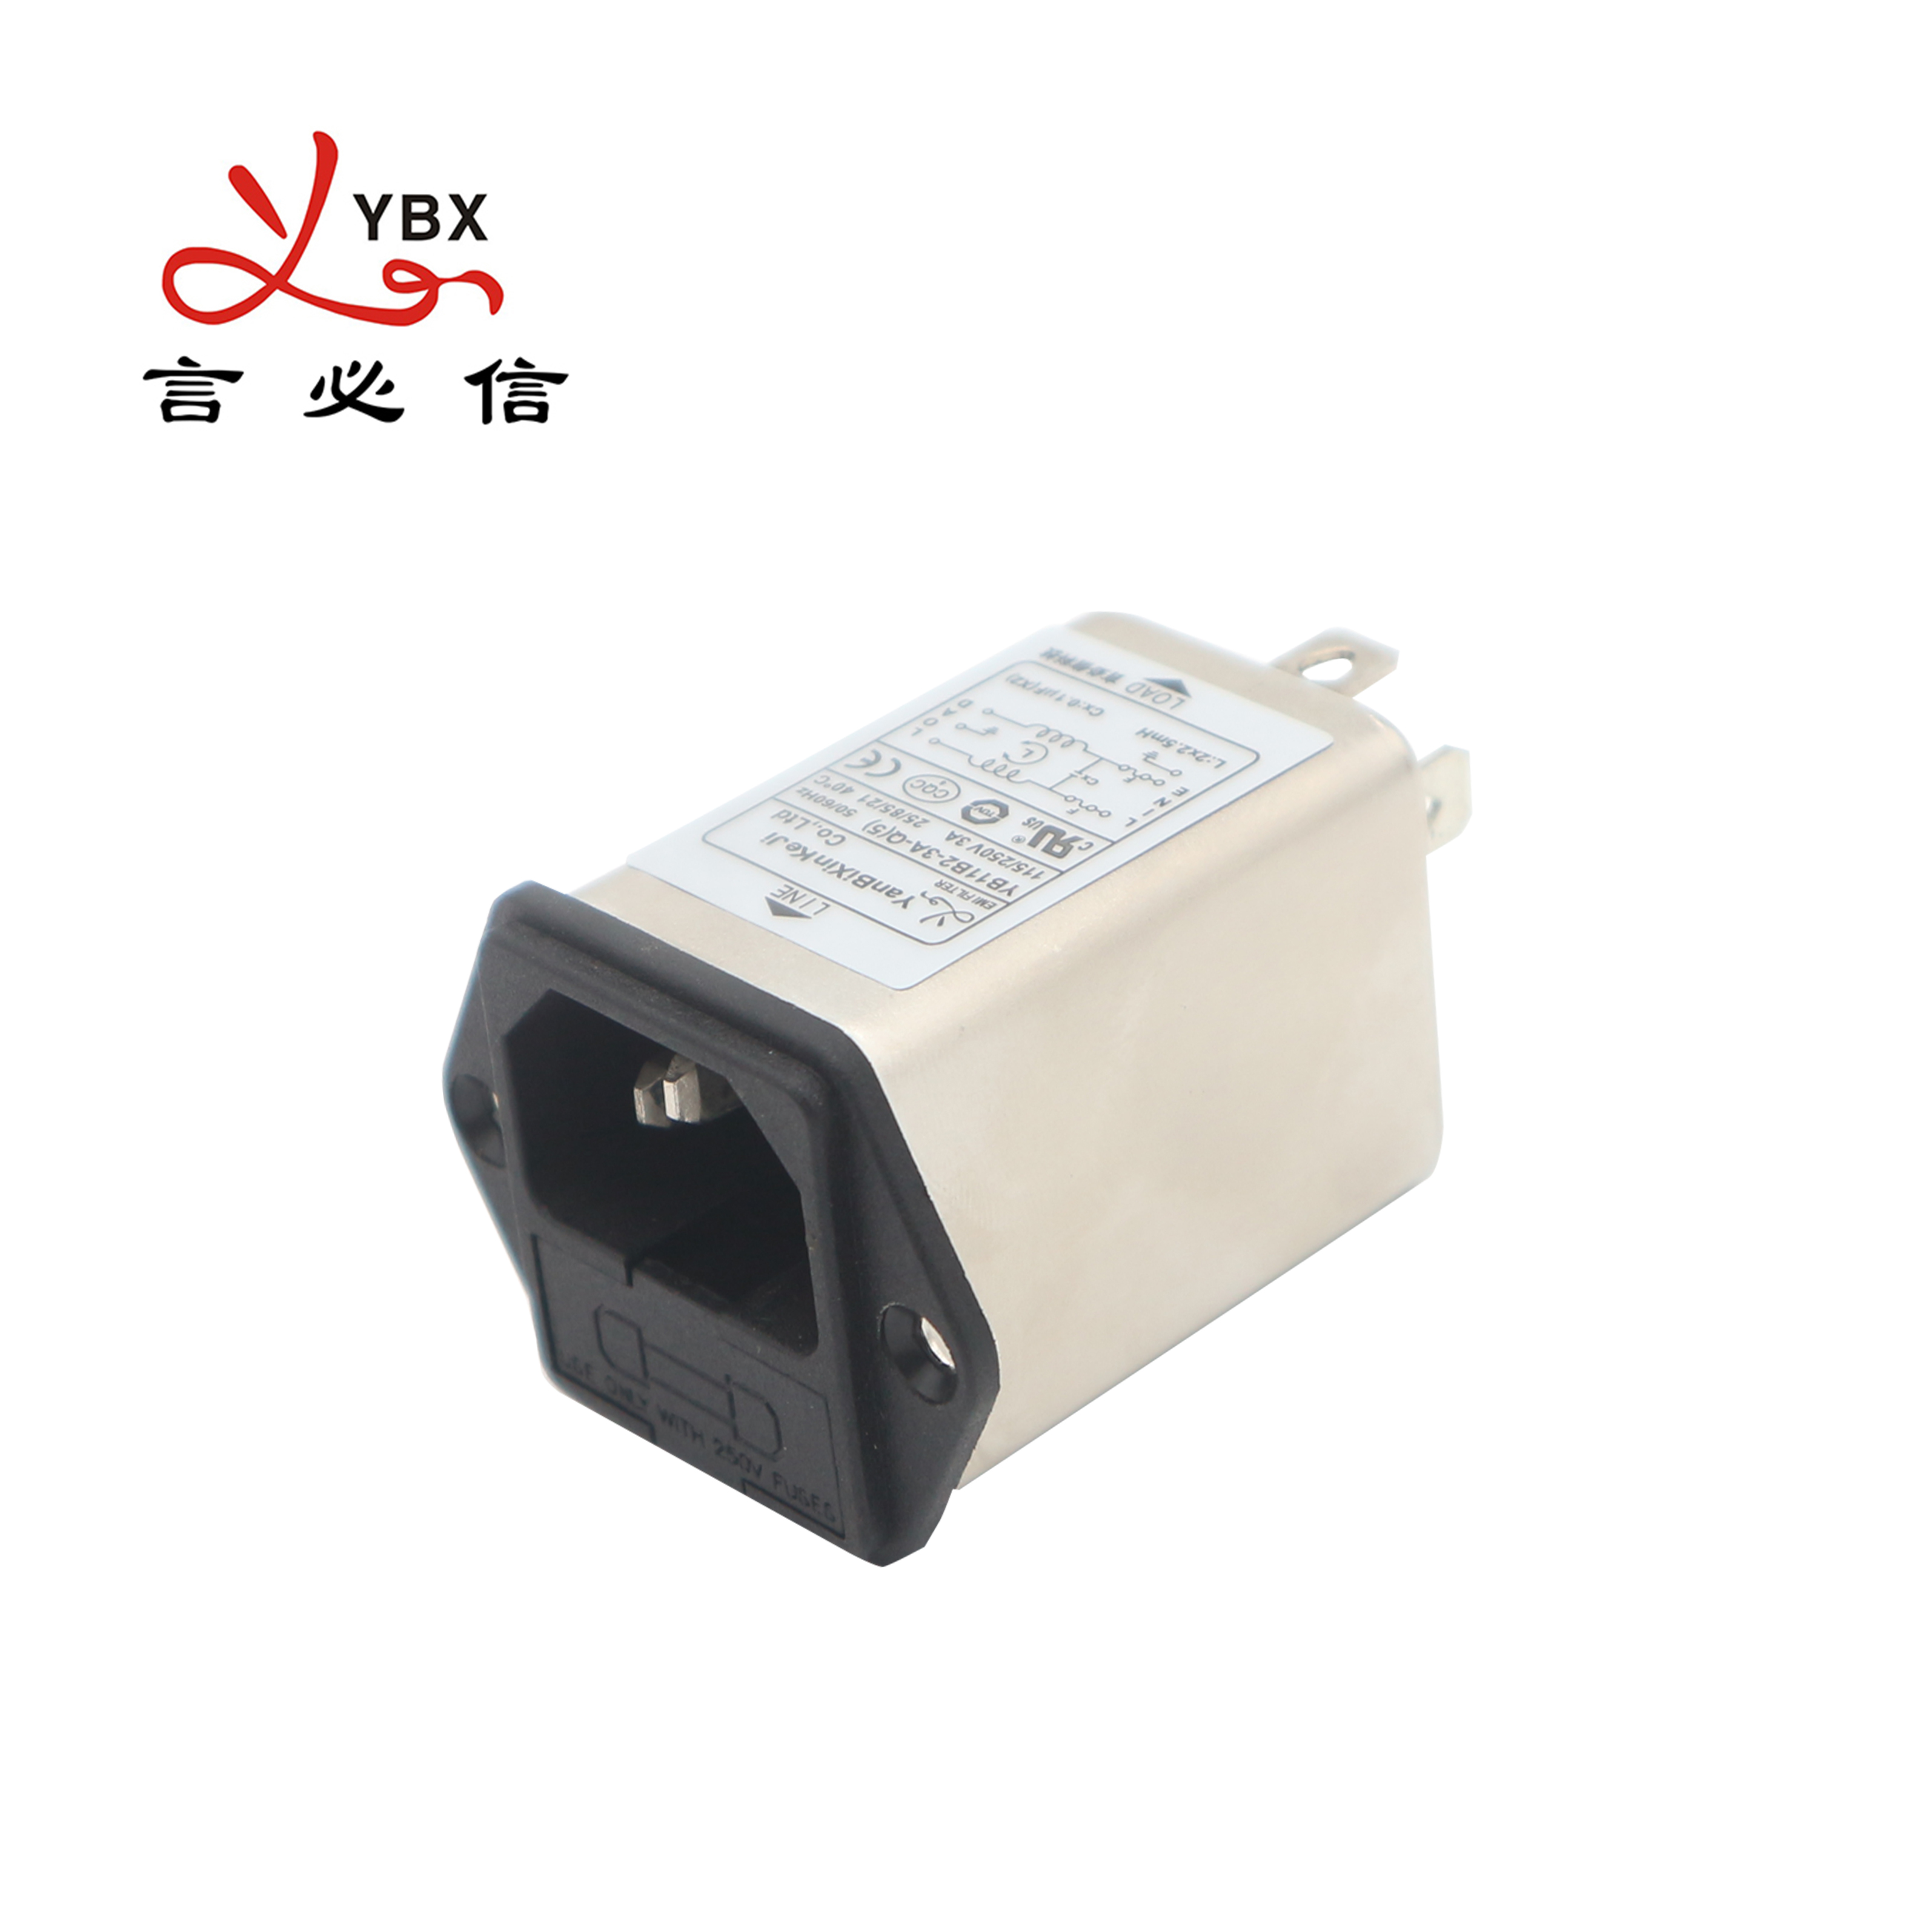 Yanbixin YB11B2 - 3A - Q double fuse inlet ac power line filter,1 - 10A, 5x20mm